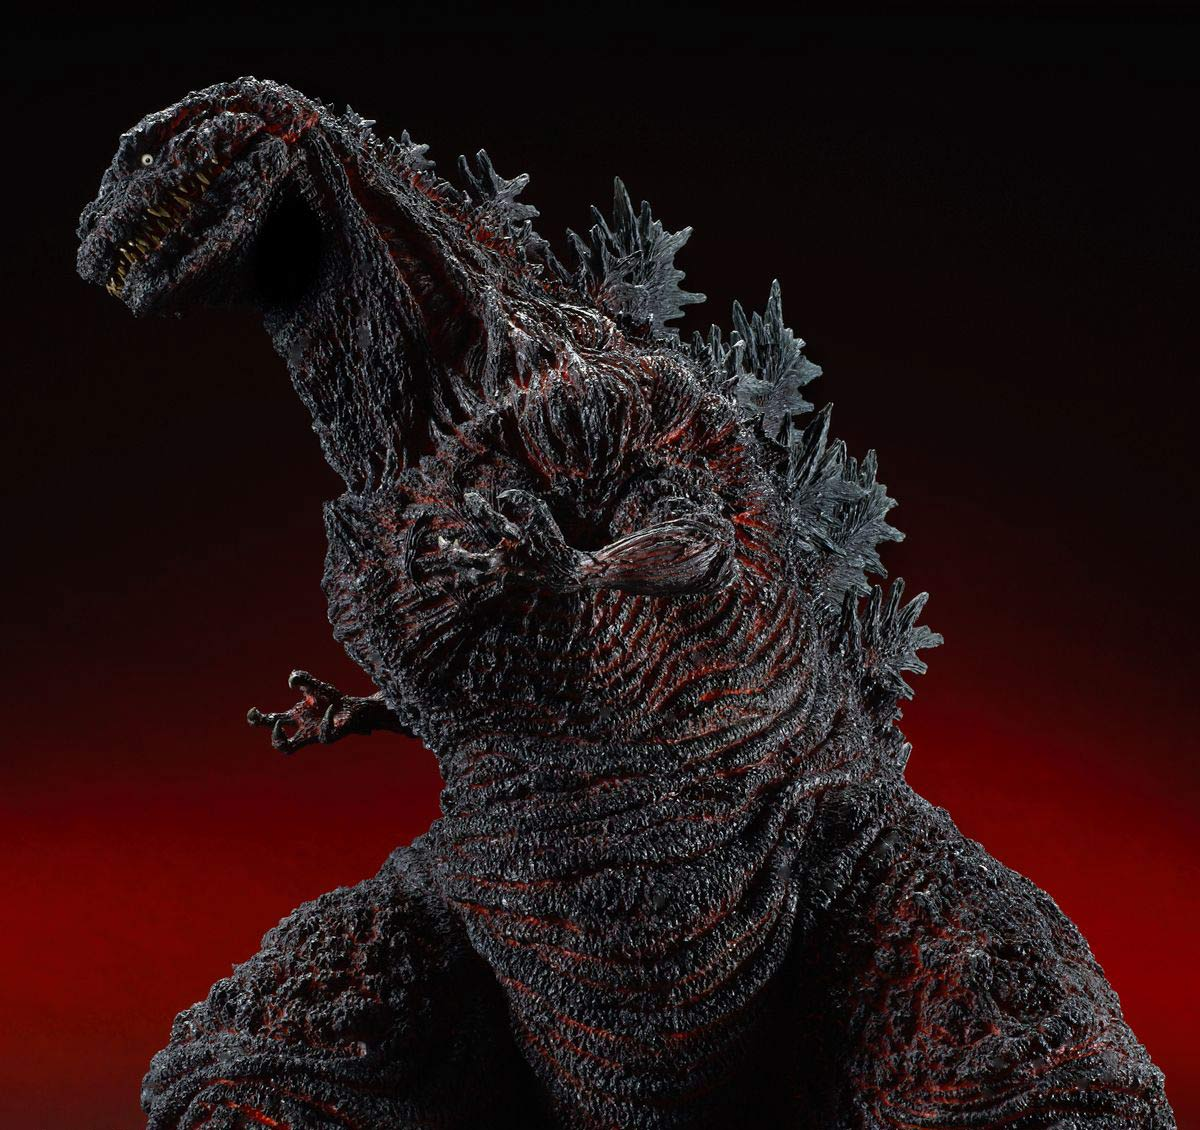 godzilla - photo #13